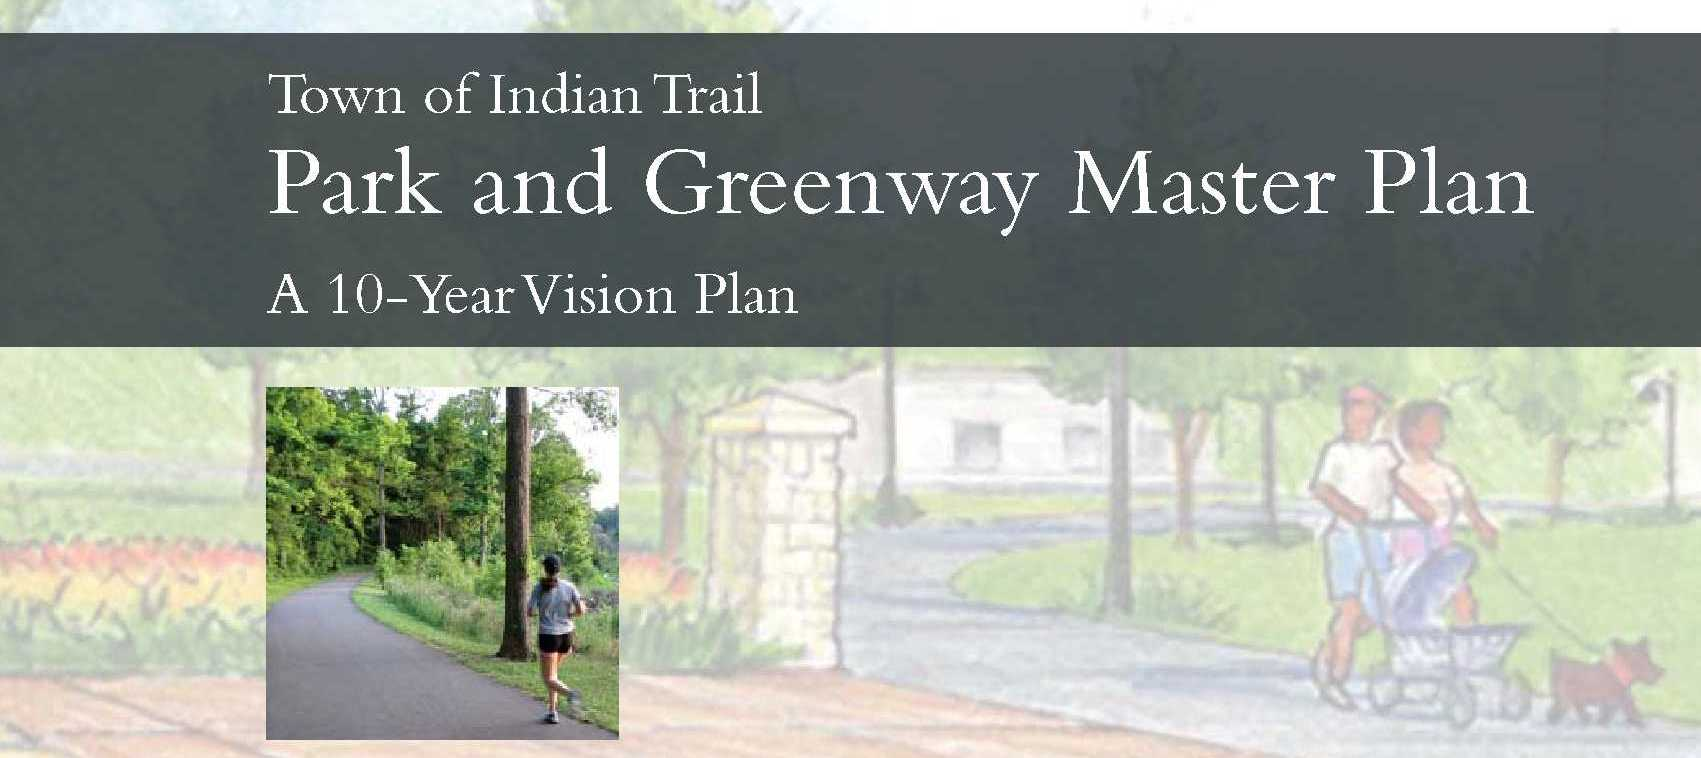 Park and Greenway Master Plan Cover